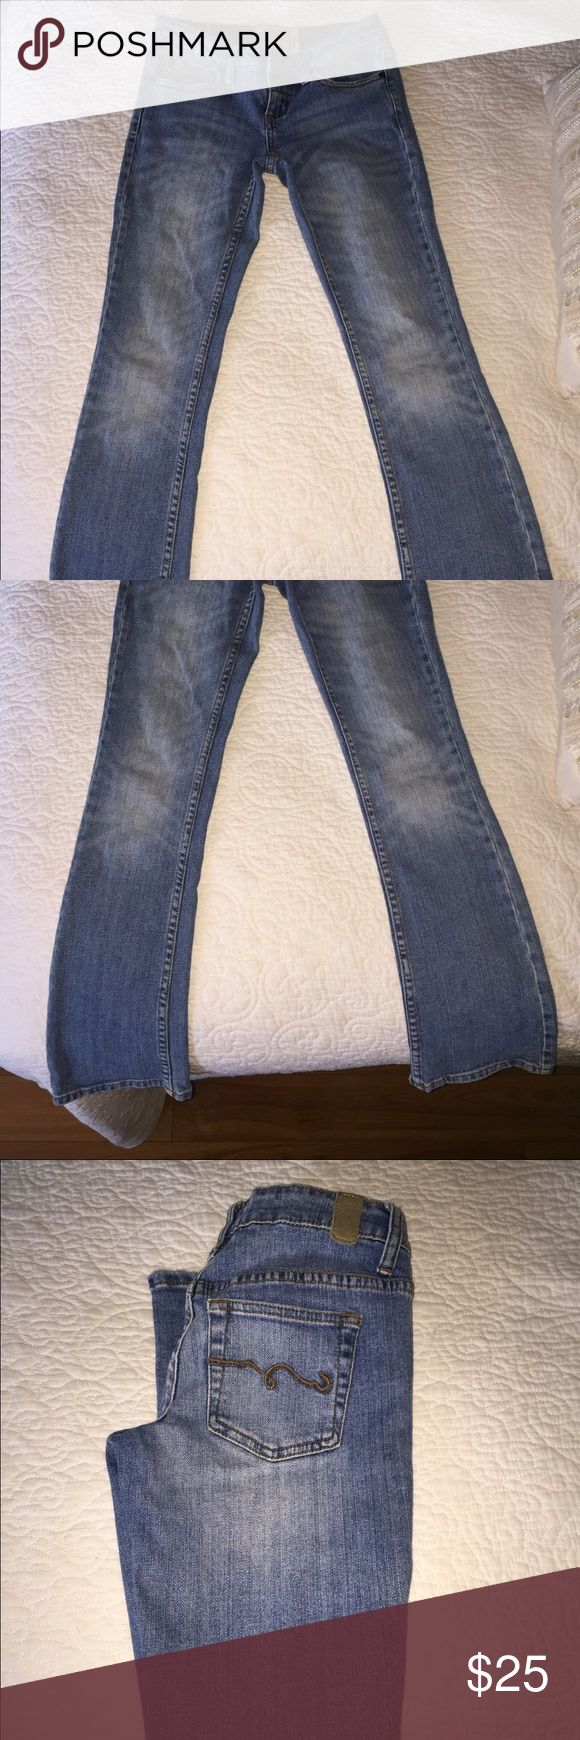 American Rag jeans Jeans are in great condition! Very comfortable and flexible! American Rag Jeans Boot Cut